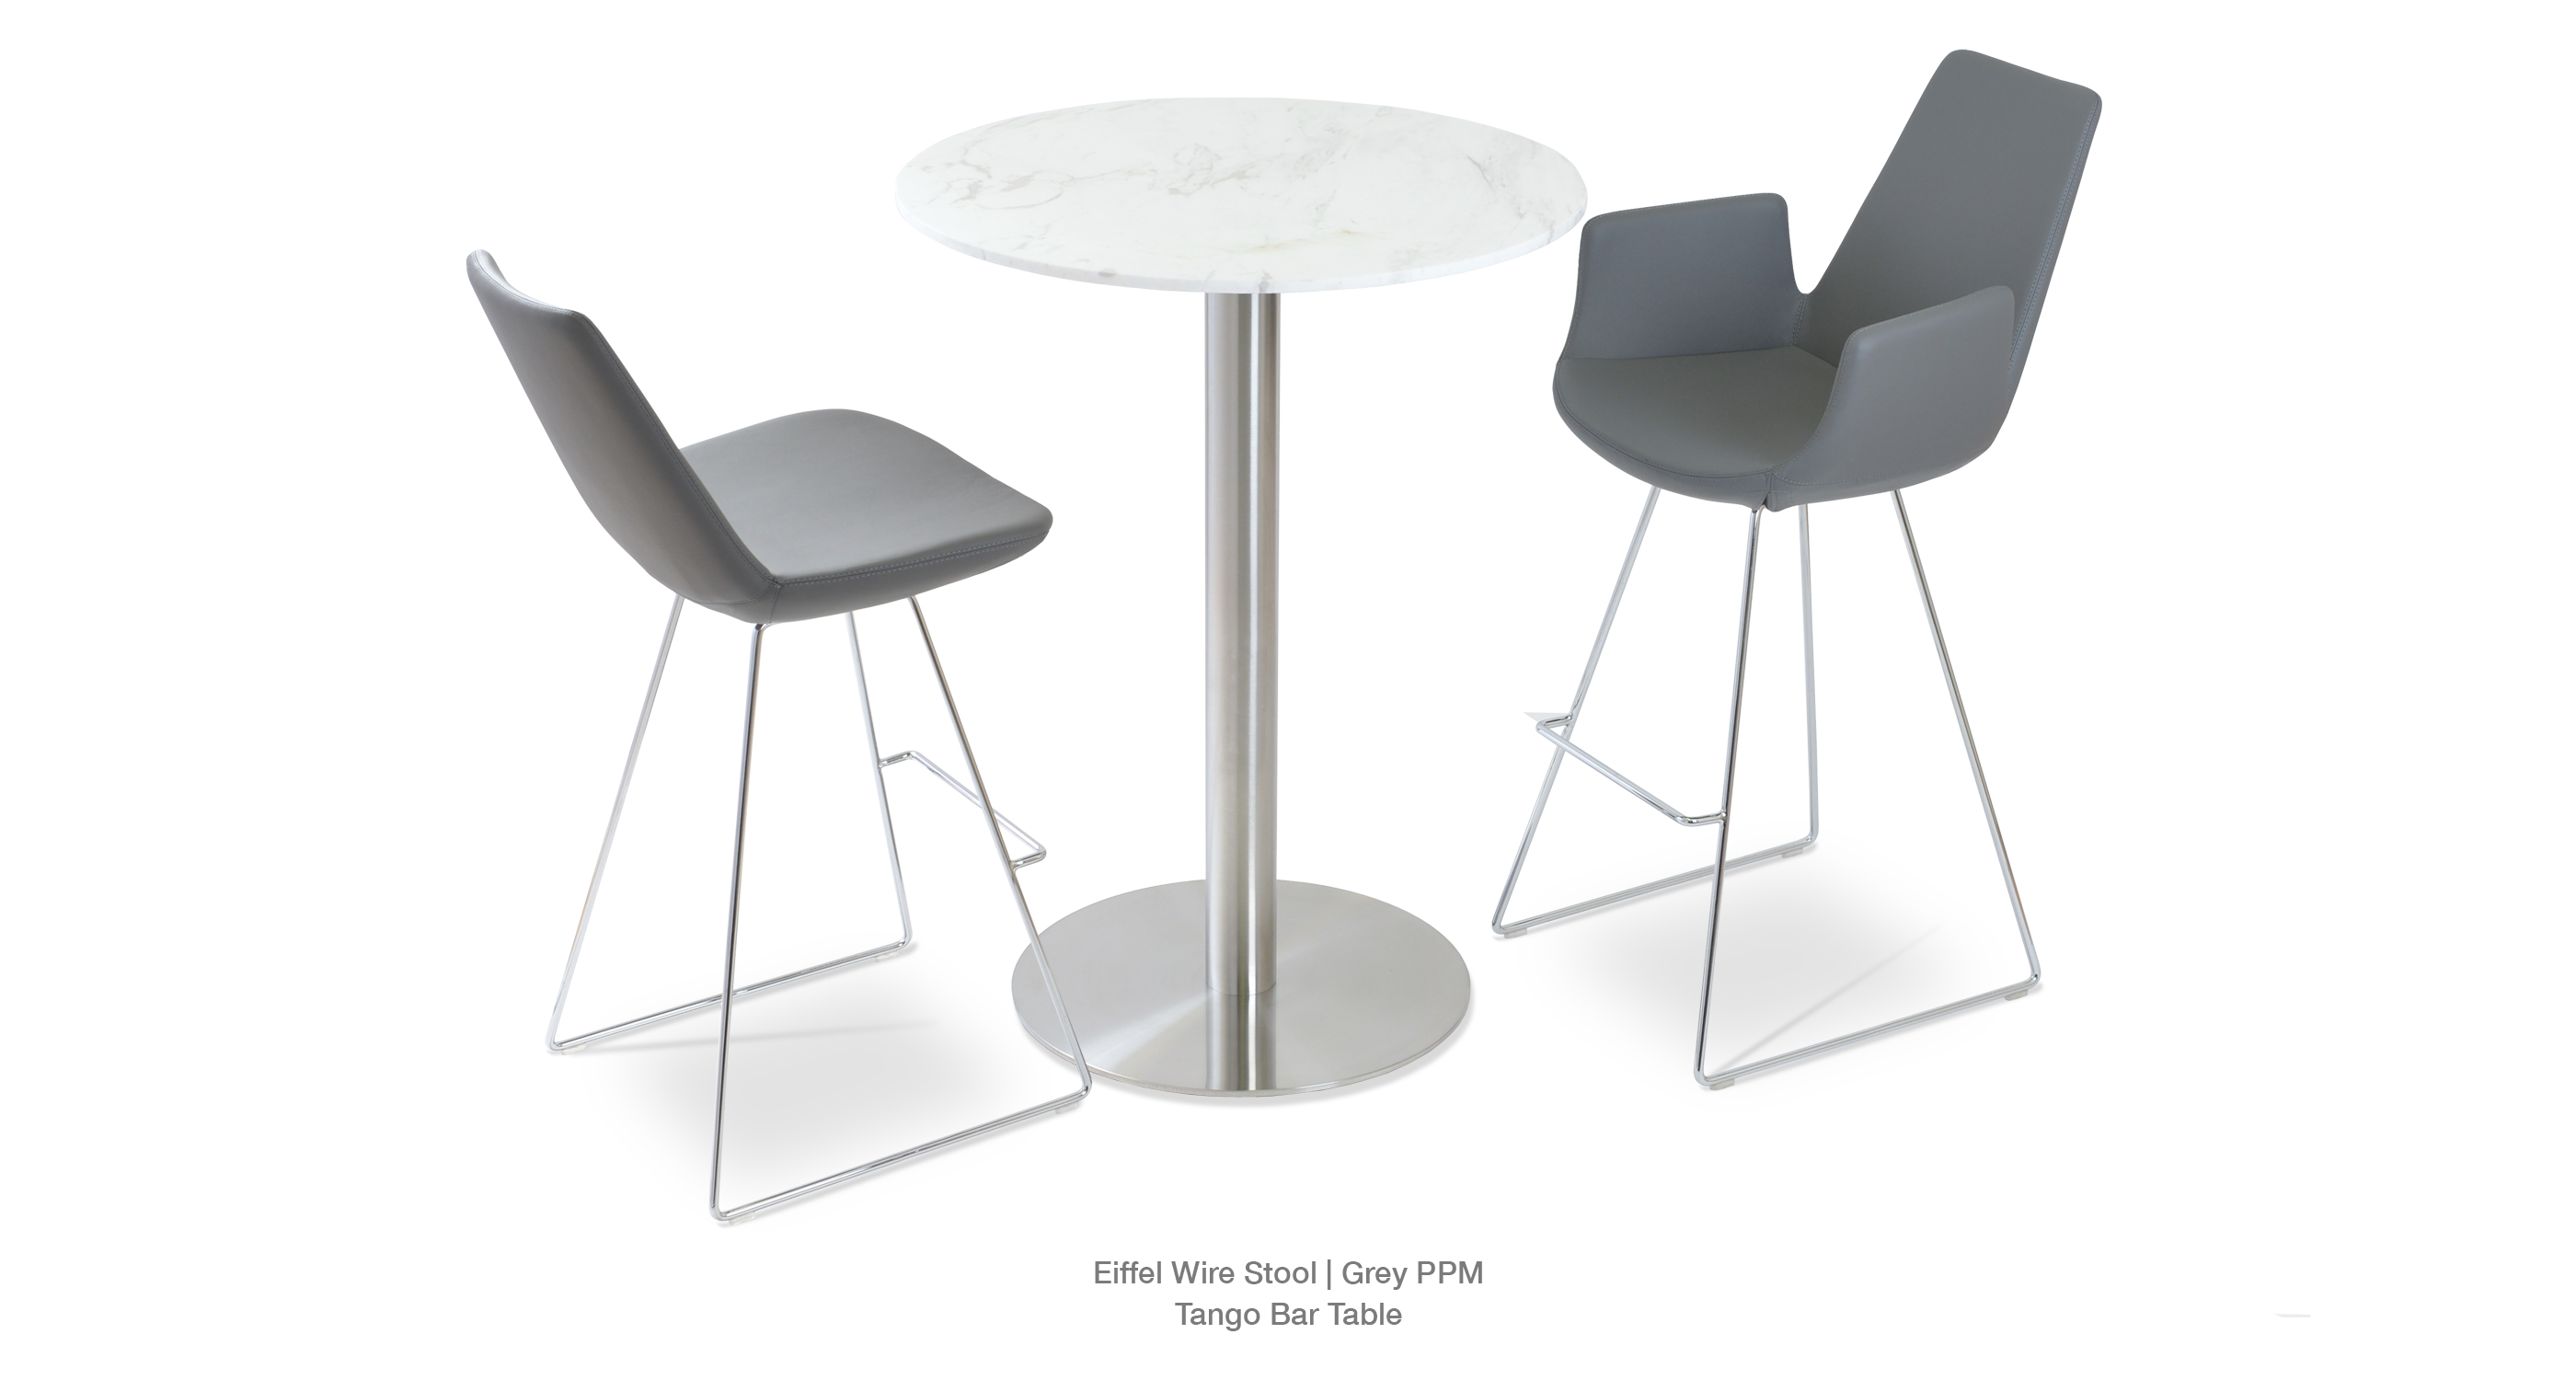 Eiffel Wire Stool Grey PPM and Tango Bar